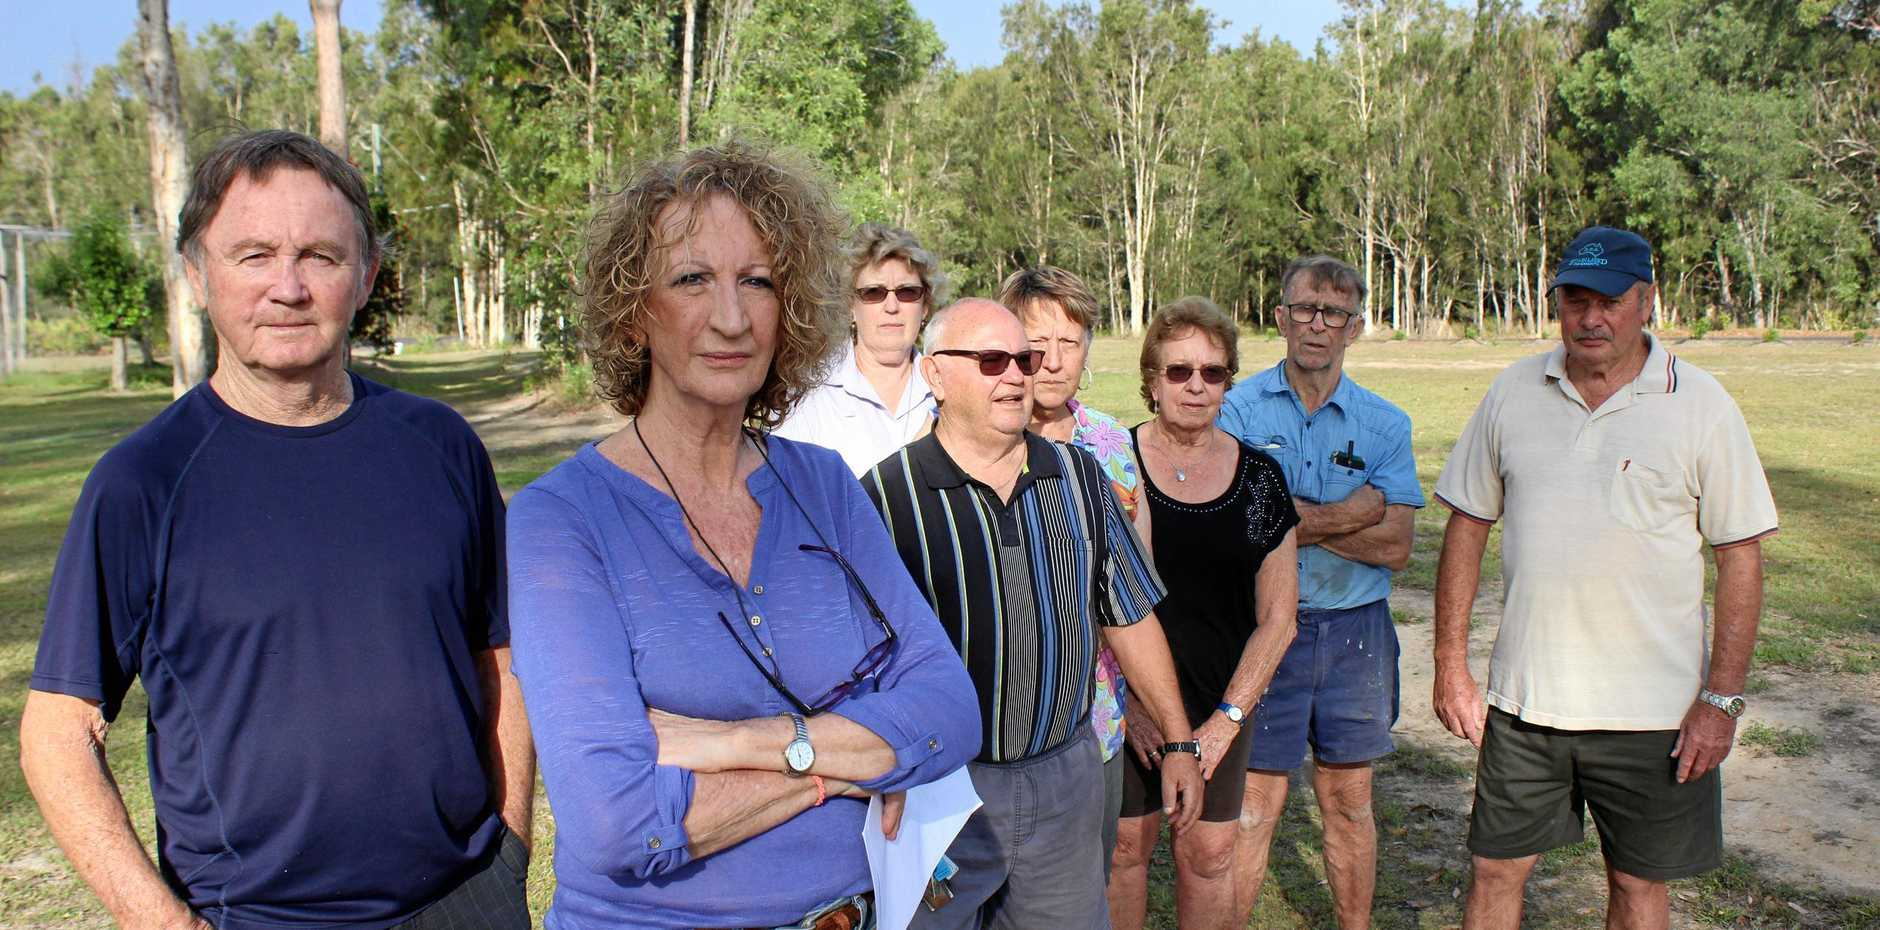 NOT IN MY BACKYARD: Ed and Deb Doble stand with other local residents opposed to the creation of a 255-unit manufactured housing estate.